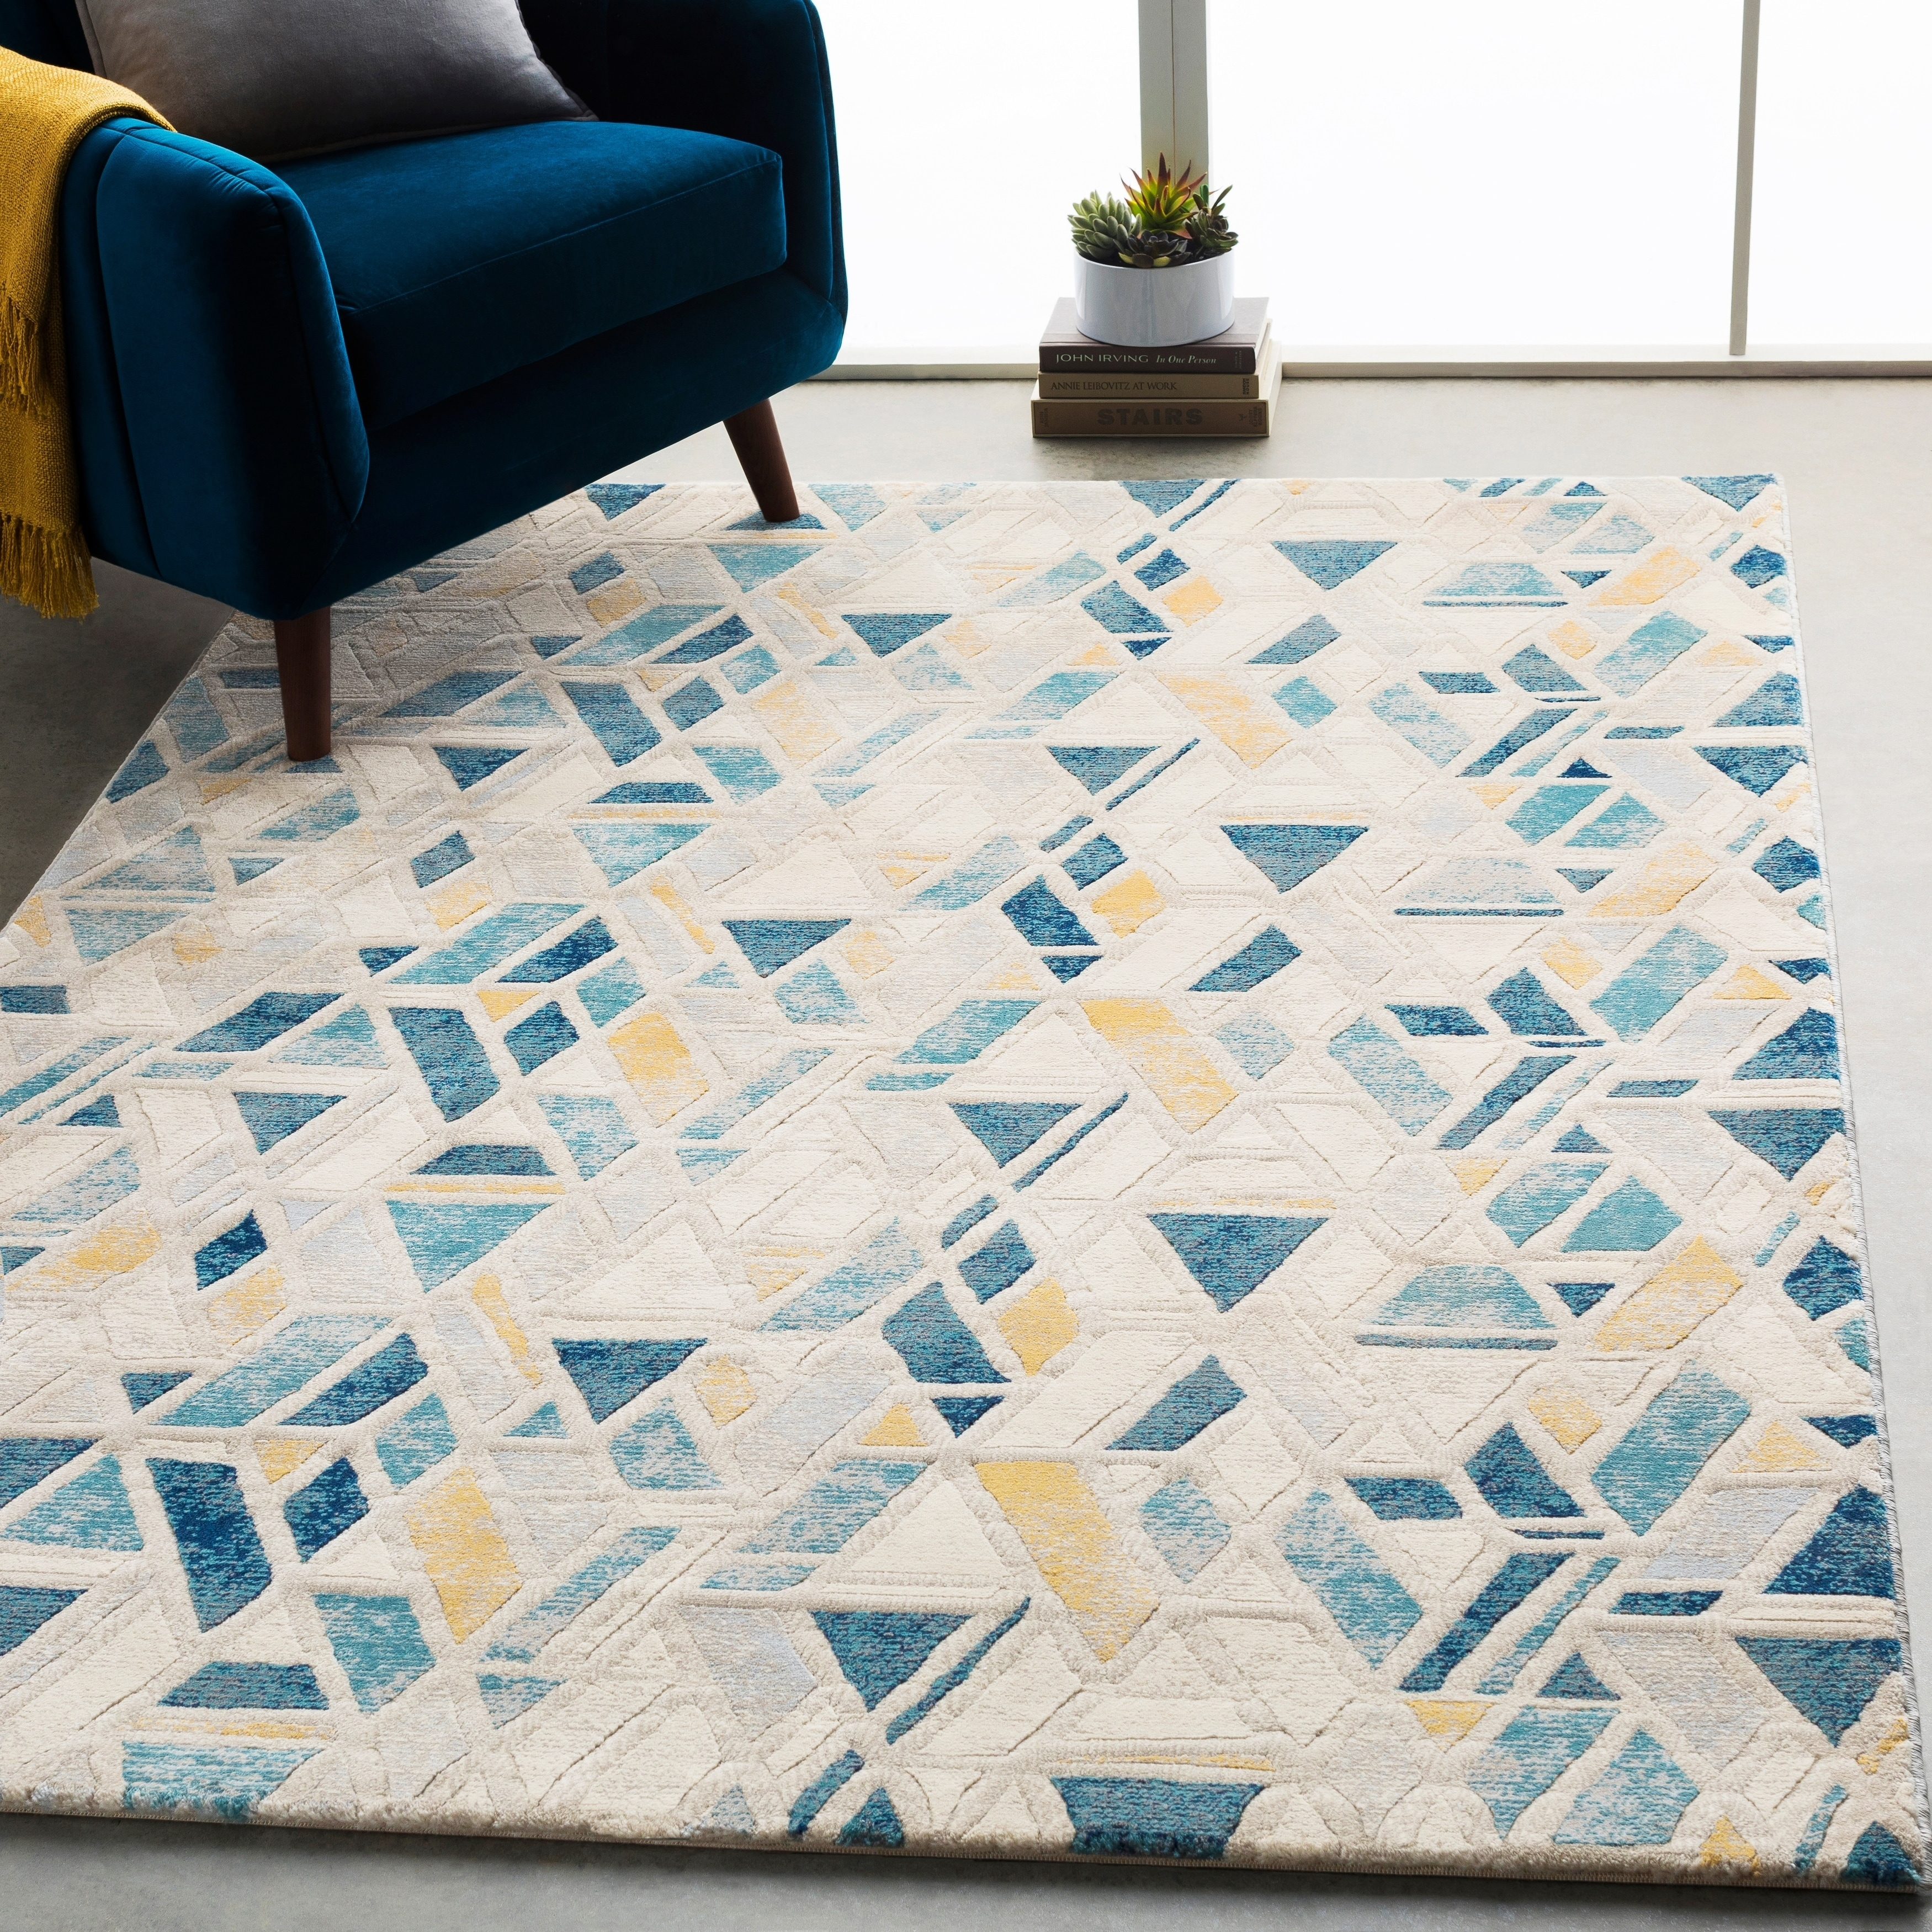 Picture of: Monae Teal Yellow Mid Century Geometric Area Rug 7 10 X 10 3 7 10 X 10 3 Overstock 21722260